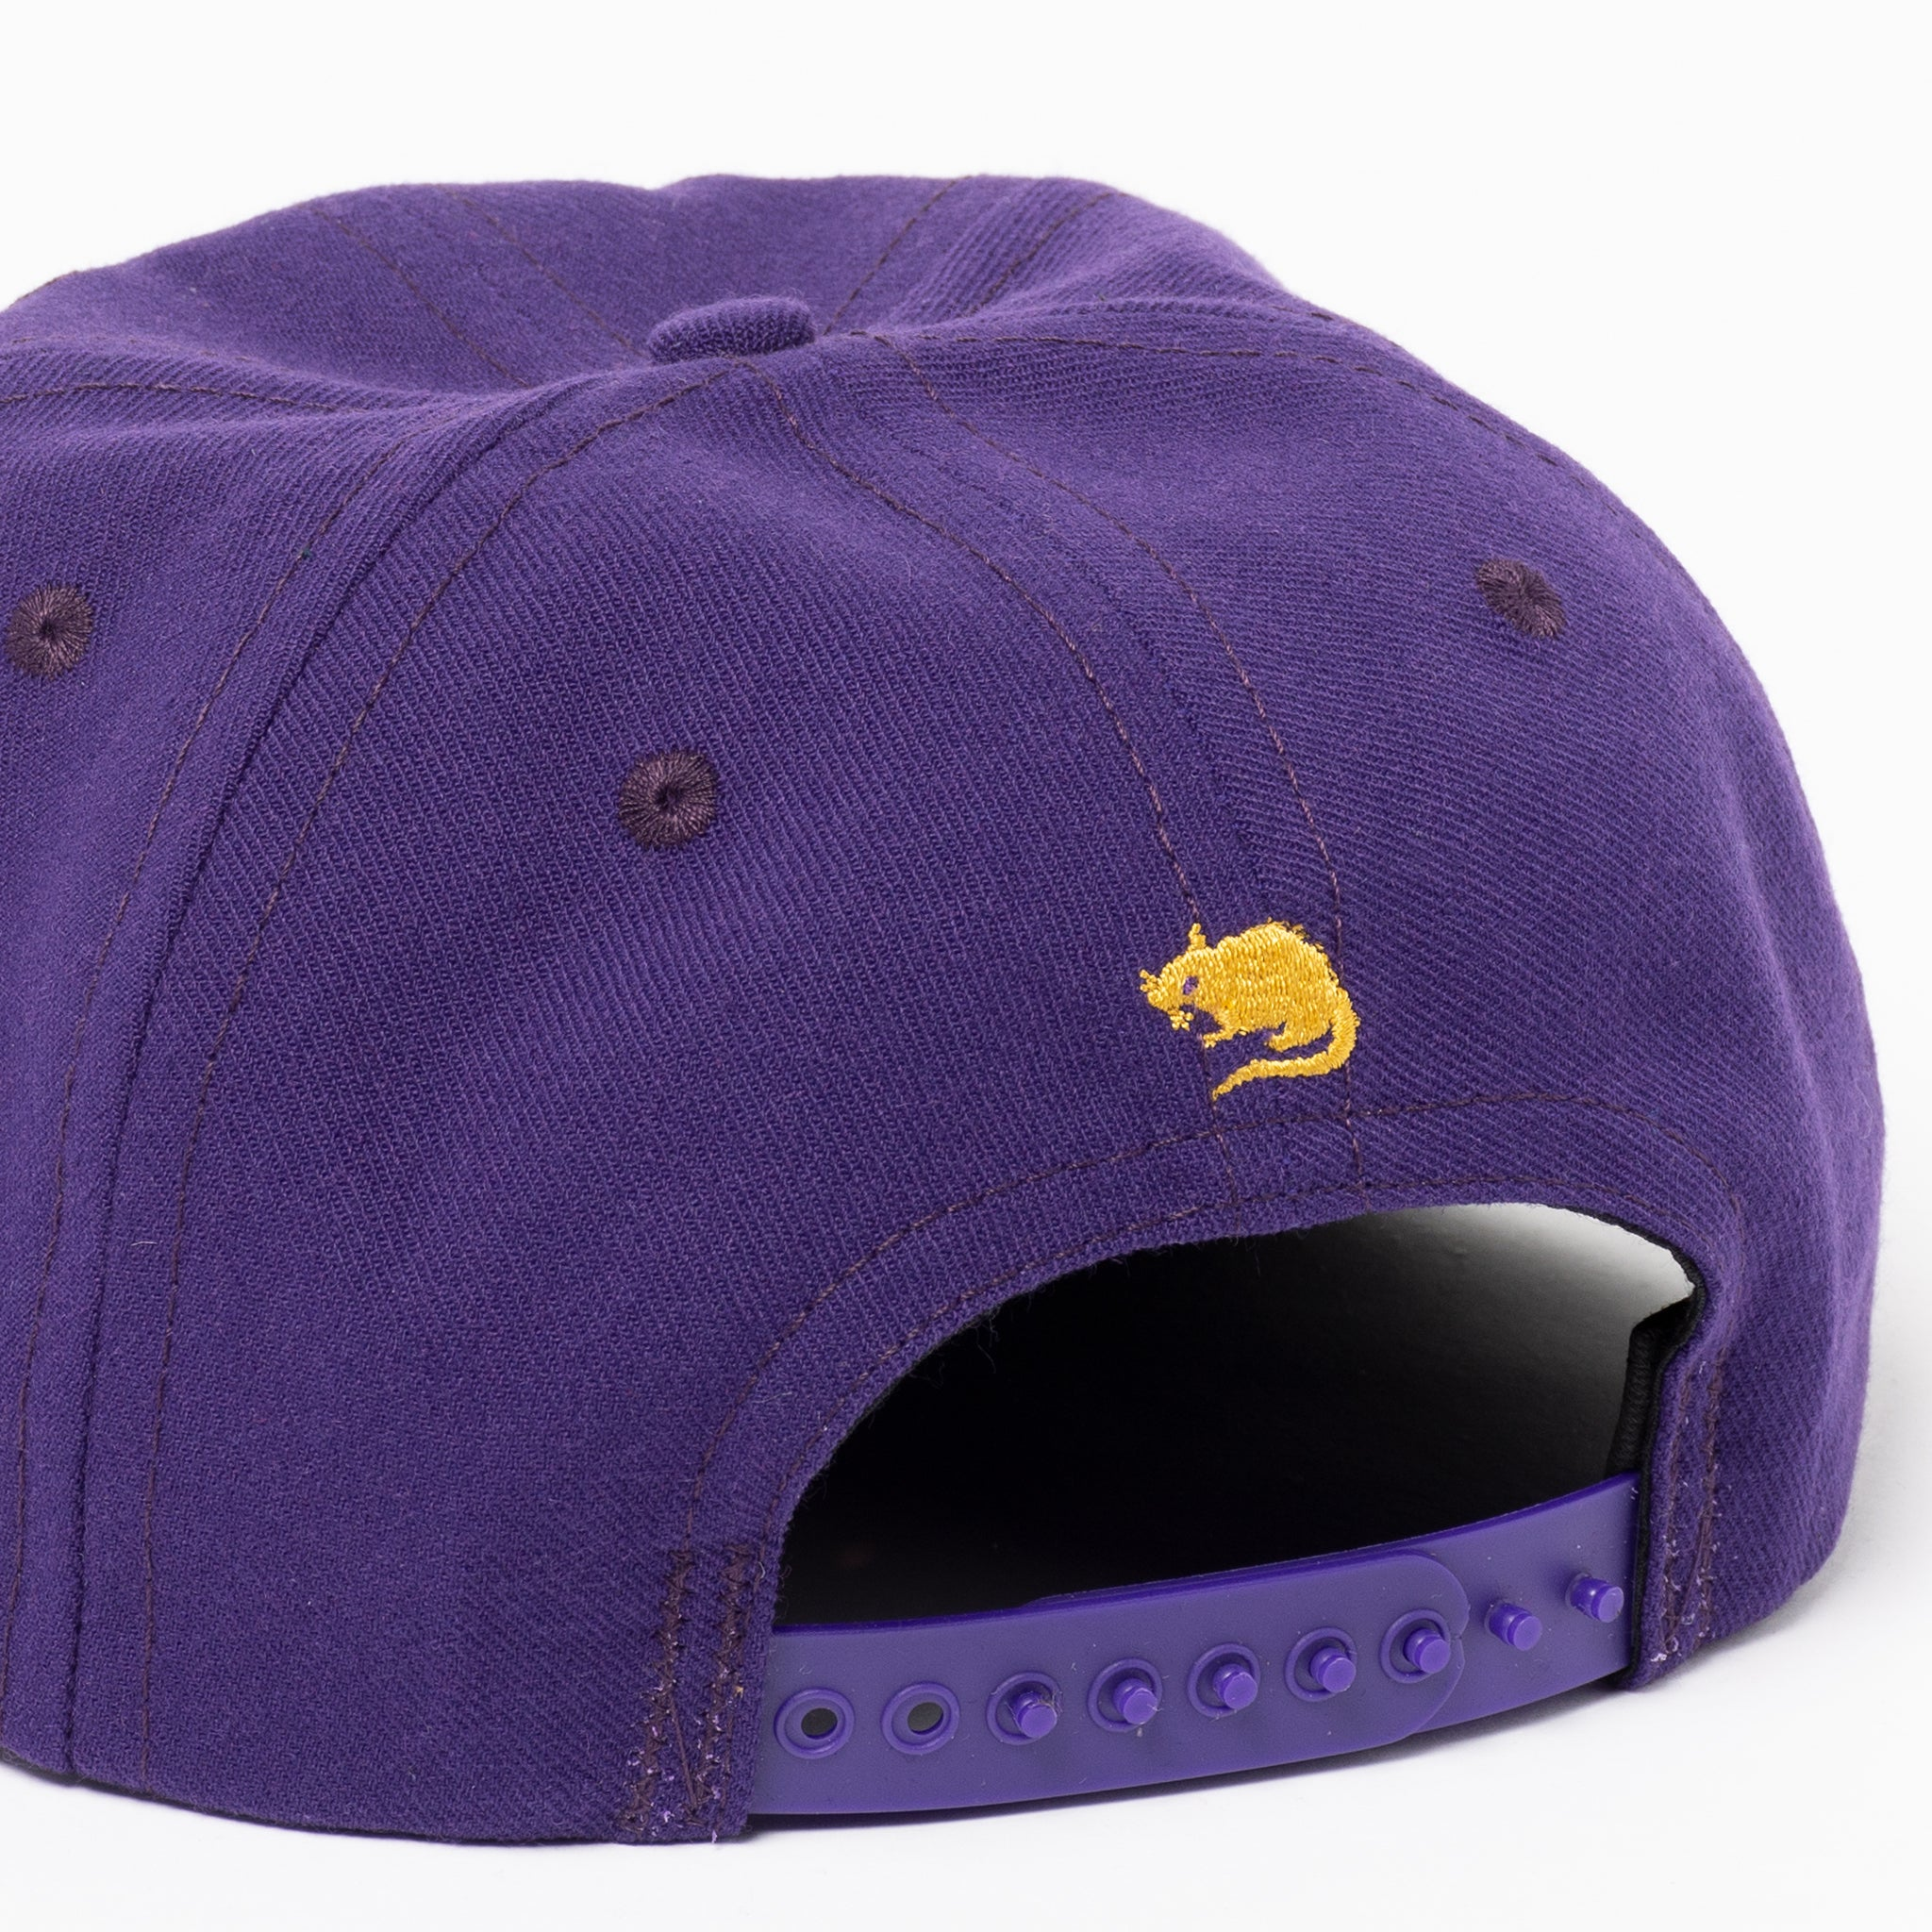 2-Tone College Arch Snap (Purple)